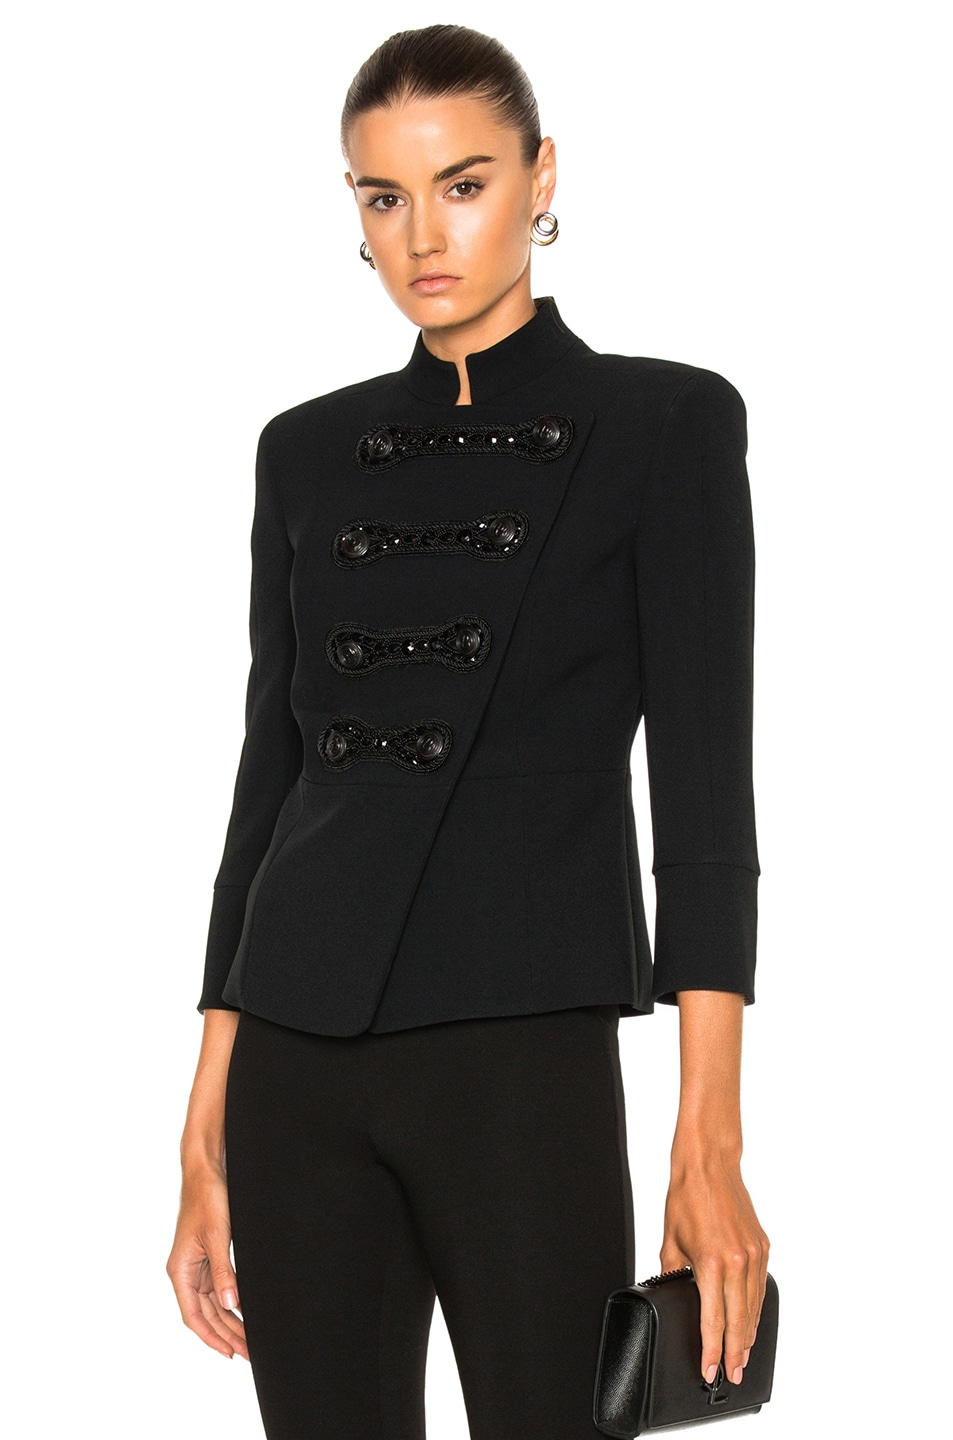 ca66ddb11a Image 1 of Pierre Balmain Military Jacket in Black